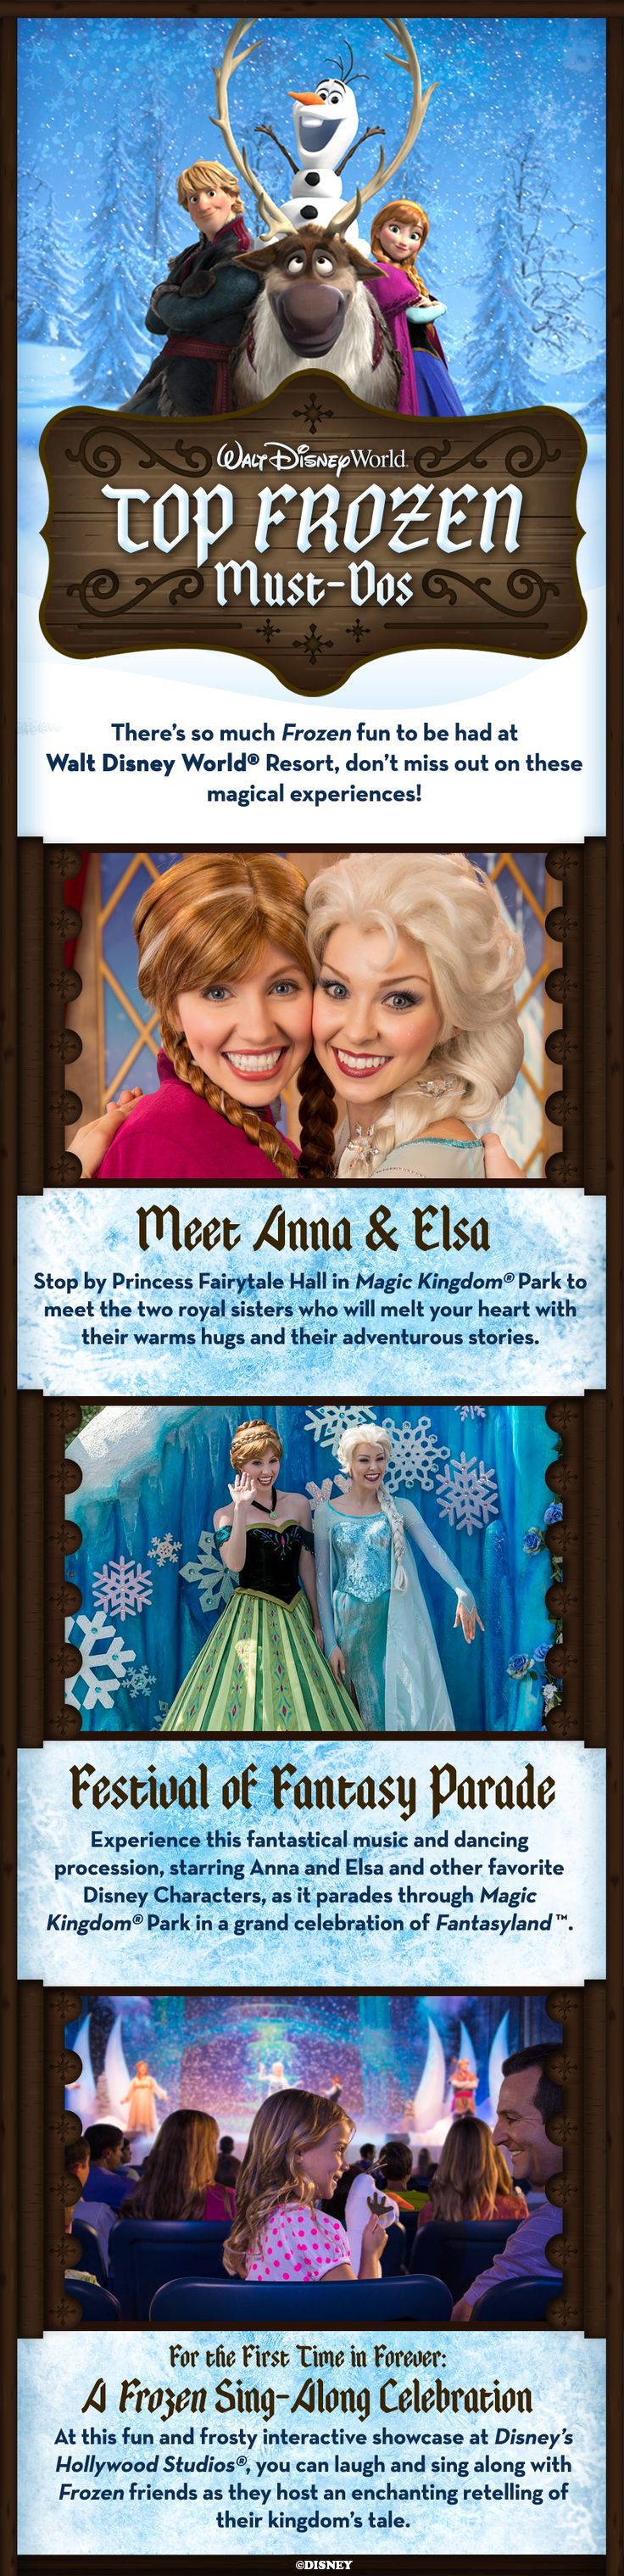 "There's so much Frozen fun to be had at Walt Disney World Resort, don't miss out on these ""Top Frozen Must-Do's"" that the entire family will enjoy!"